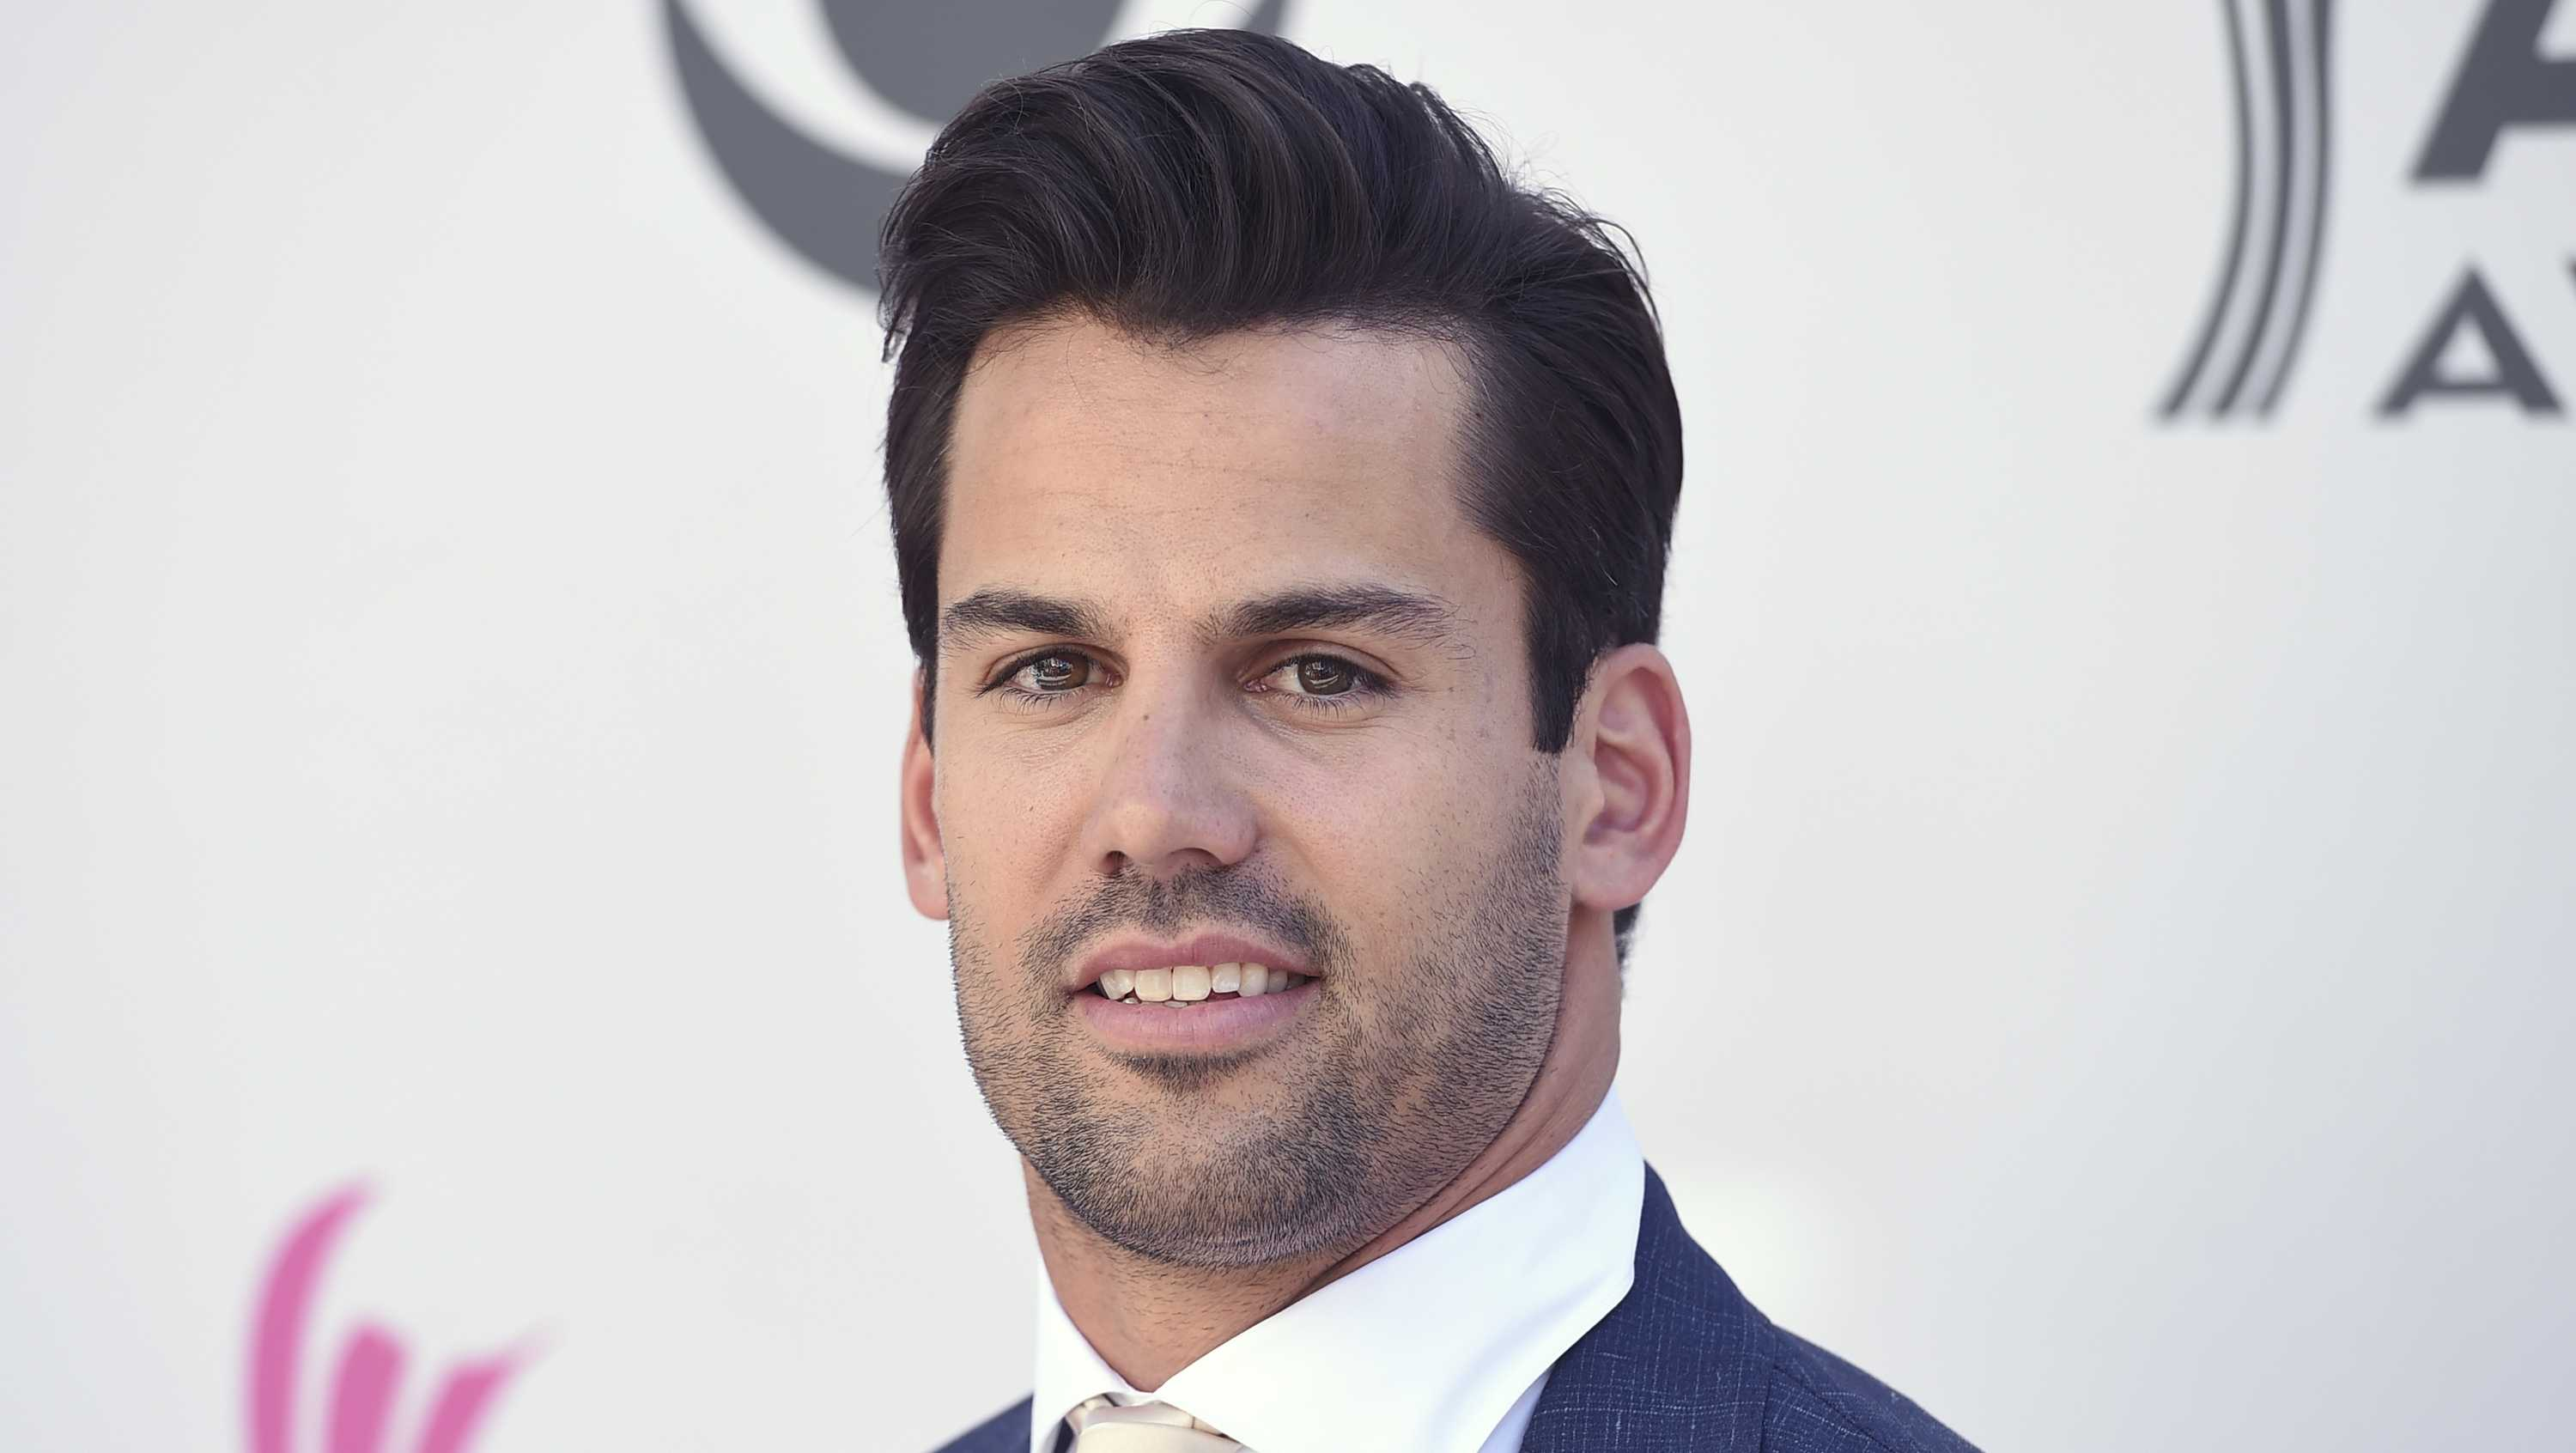 Eric Decker arrives at the 52nd annual Academy of Country Music Awards at the T-Mobile Arena on Sunday, April 2, 2017, in Las Vegas. (Photo by Jordan Strauss/Invision/AP)